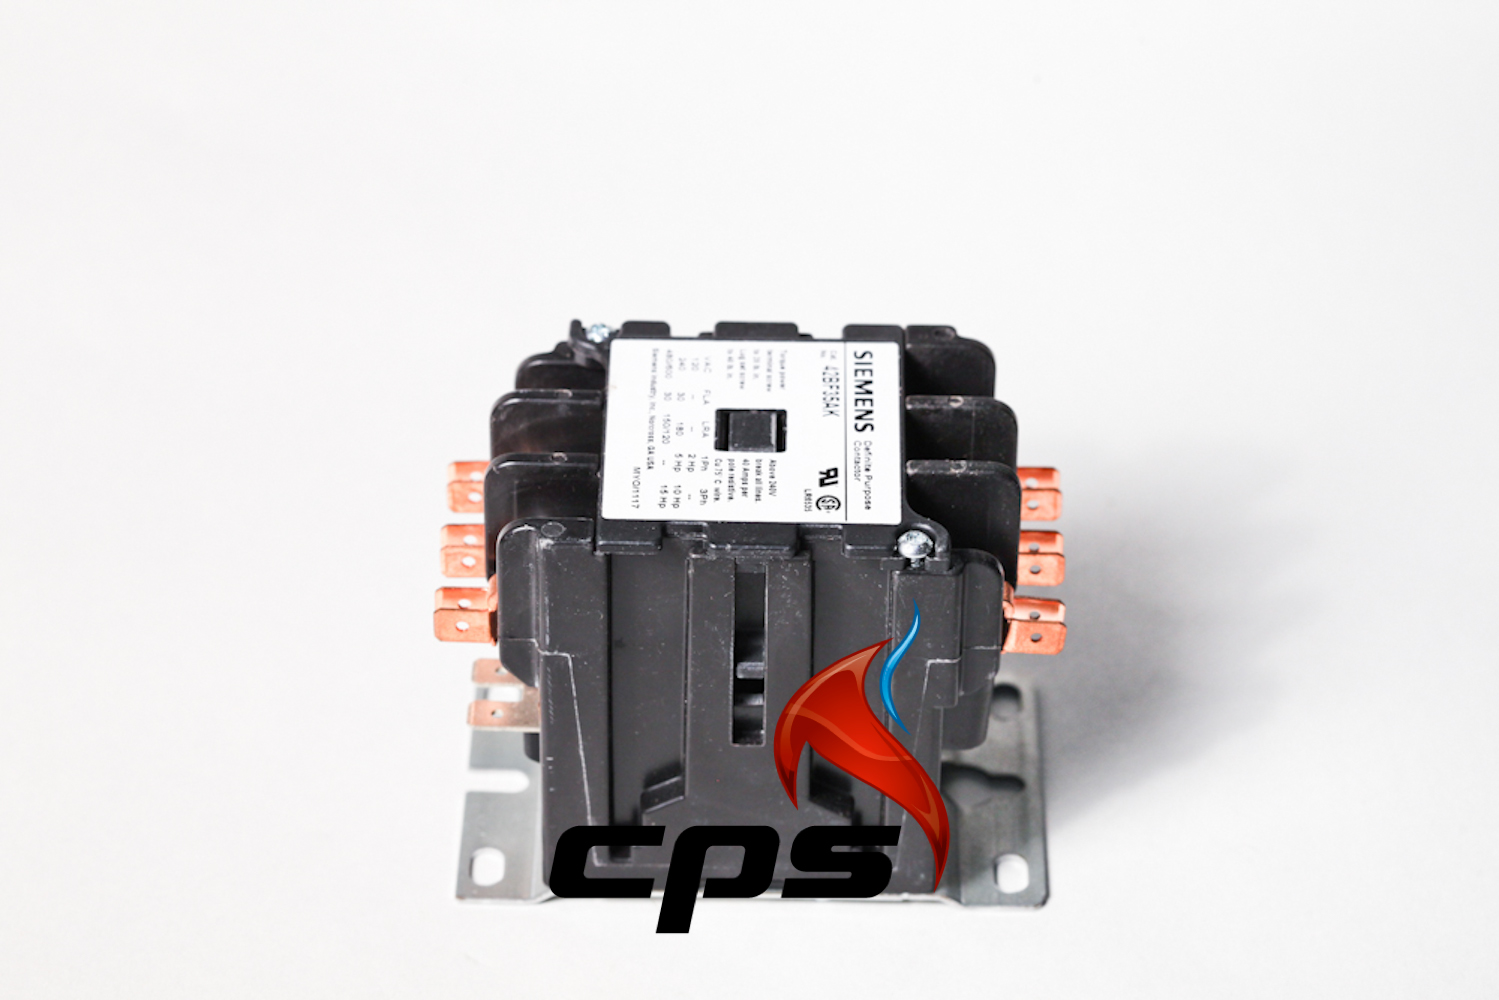 2E-37779 - Wells Manufacturing - CPS